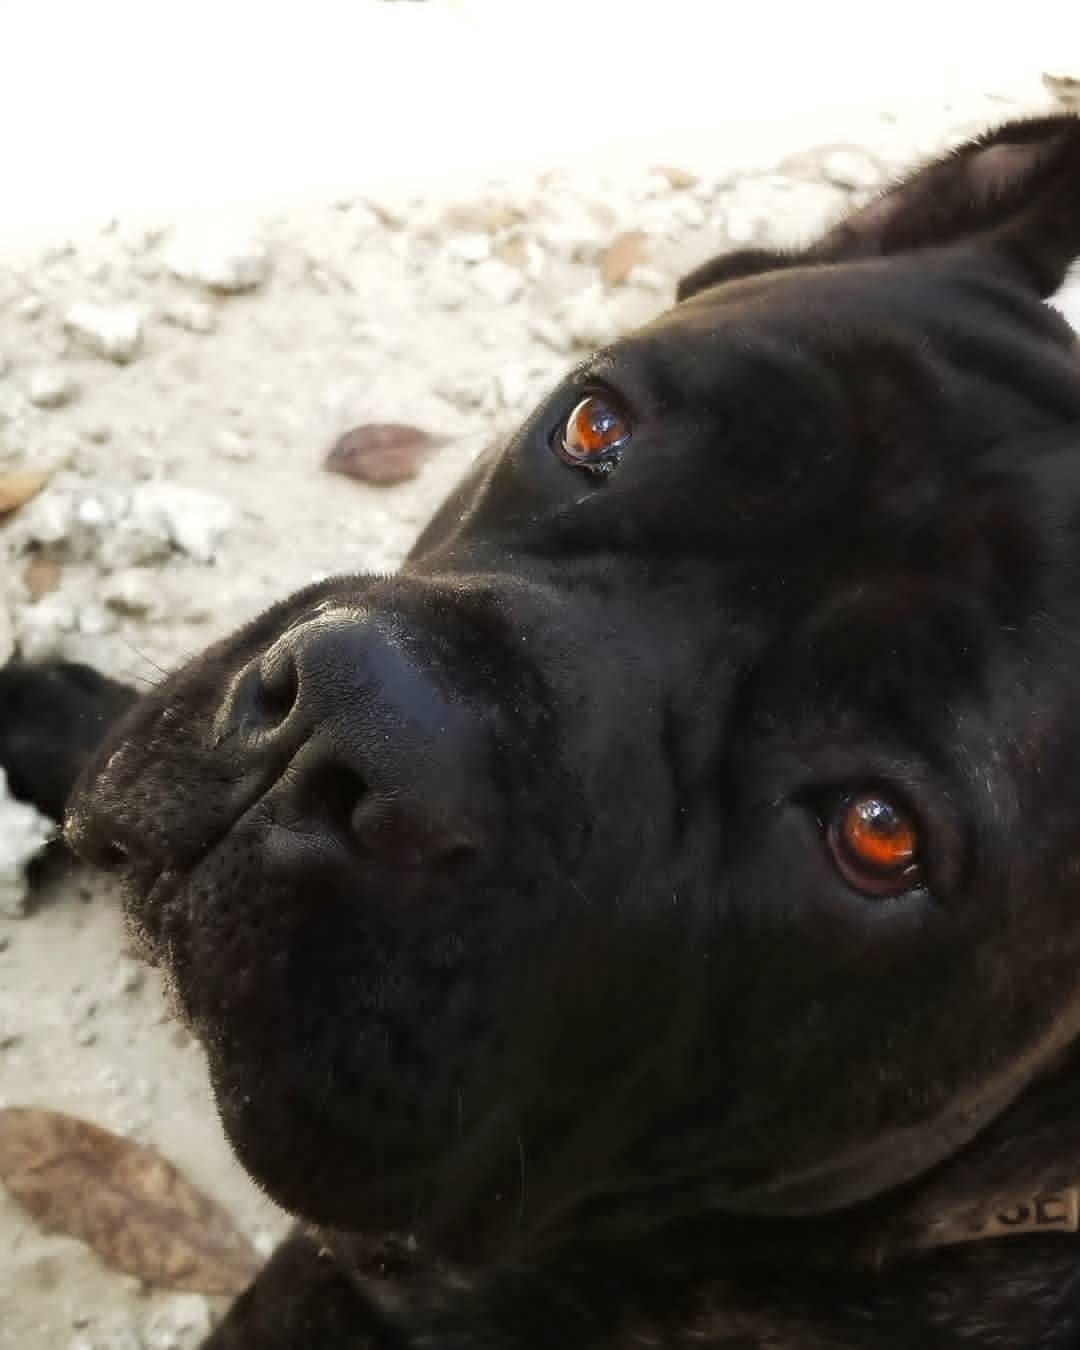 Polubienia 448 Komentarze 1 Cane Corso Lovers Canecorso Lovers Na Instagramie Cool Shot From Mouse Canecorso Check Out The Web Link On Our Bio Ca